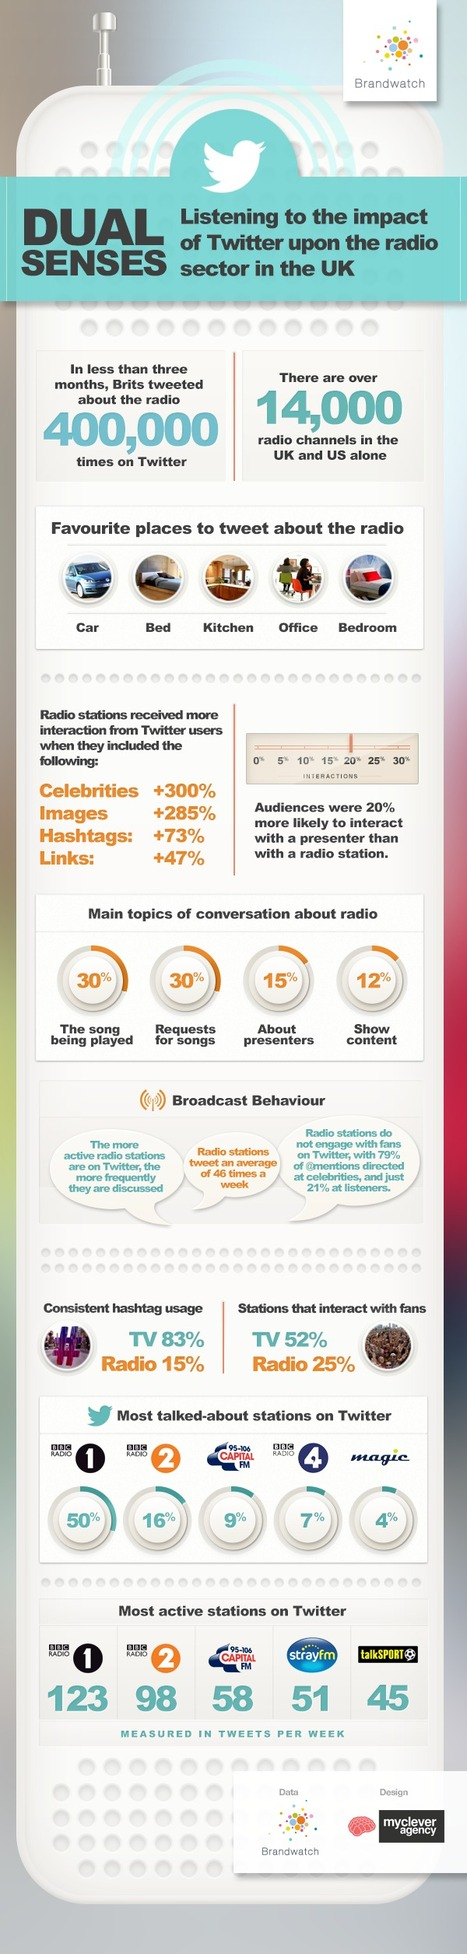 How Has Twitter Impacted Radio? [INFOGRAPHIC] - AllTwitter | Danger  and benefits of social media use among people | Scoop.it